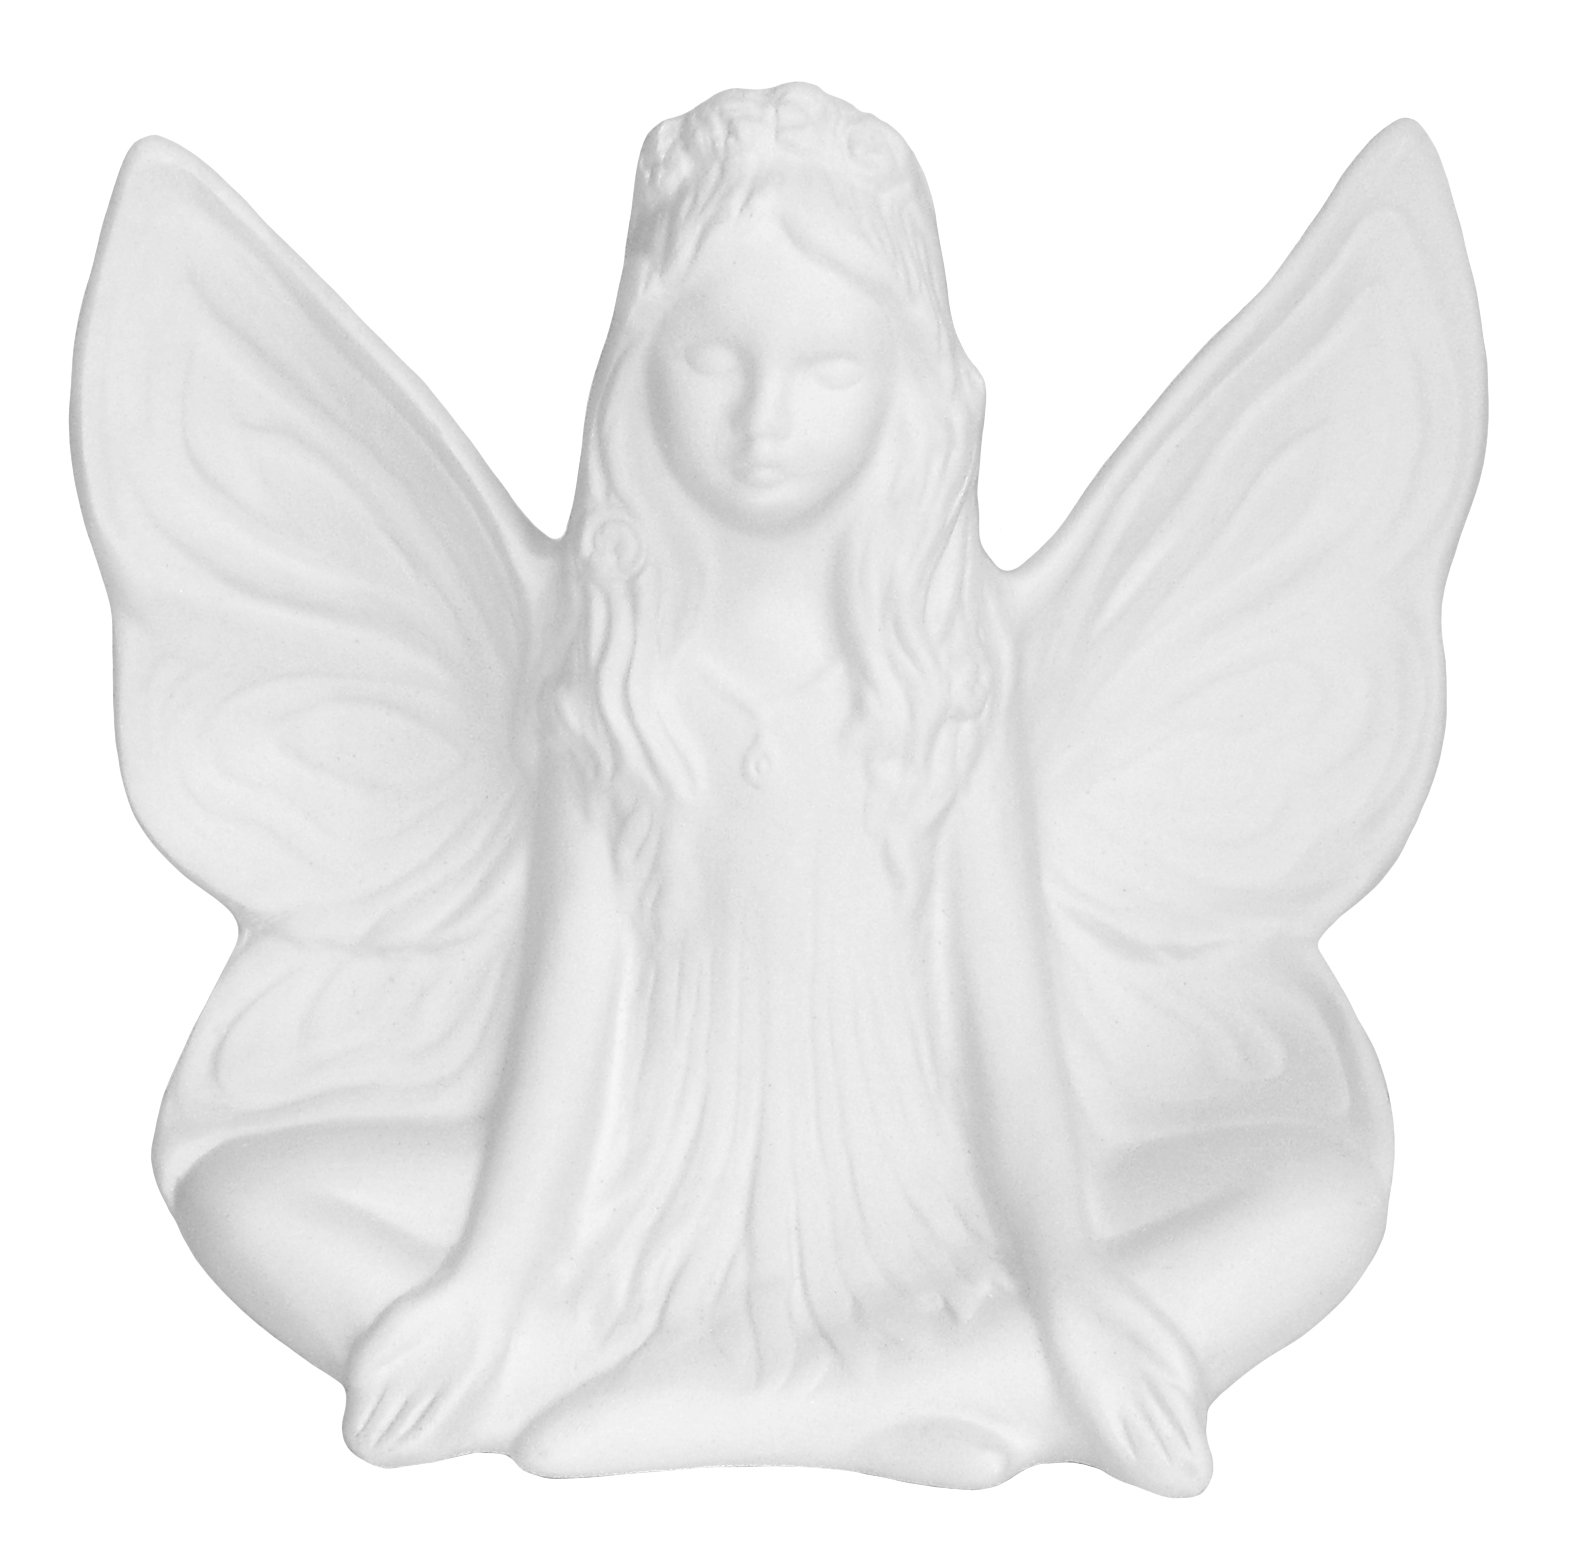 Mari The Magnificent Fairy - Stunning Detail - Paint Your Own Mystical Ceramic Keepsake